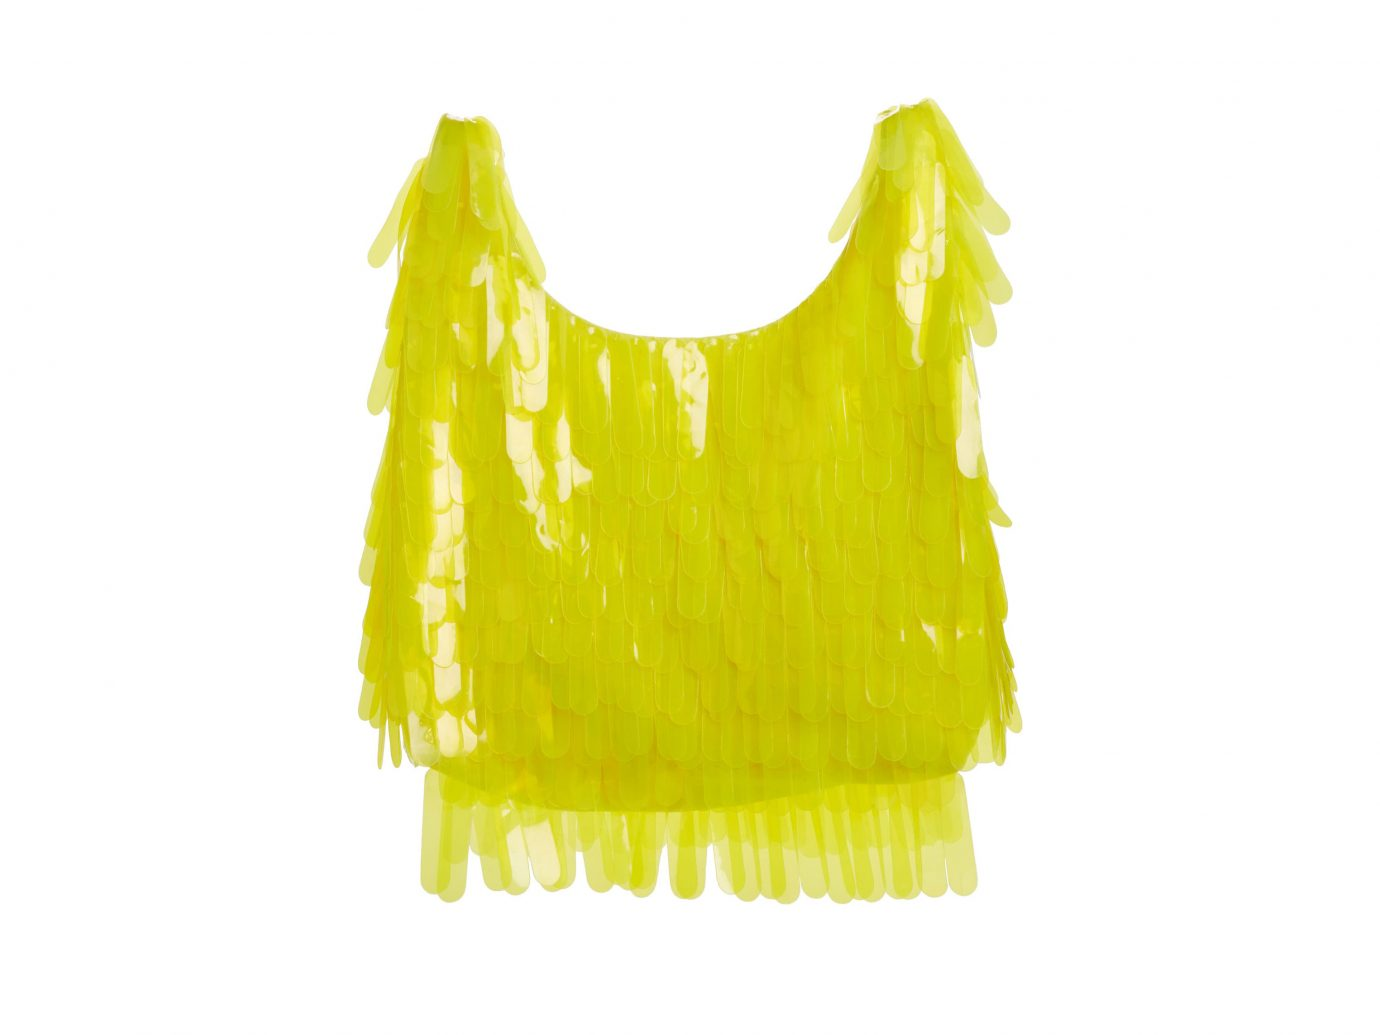 Dries Van Noten Fringe Shopper Tote